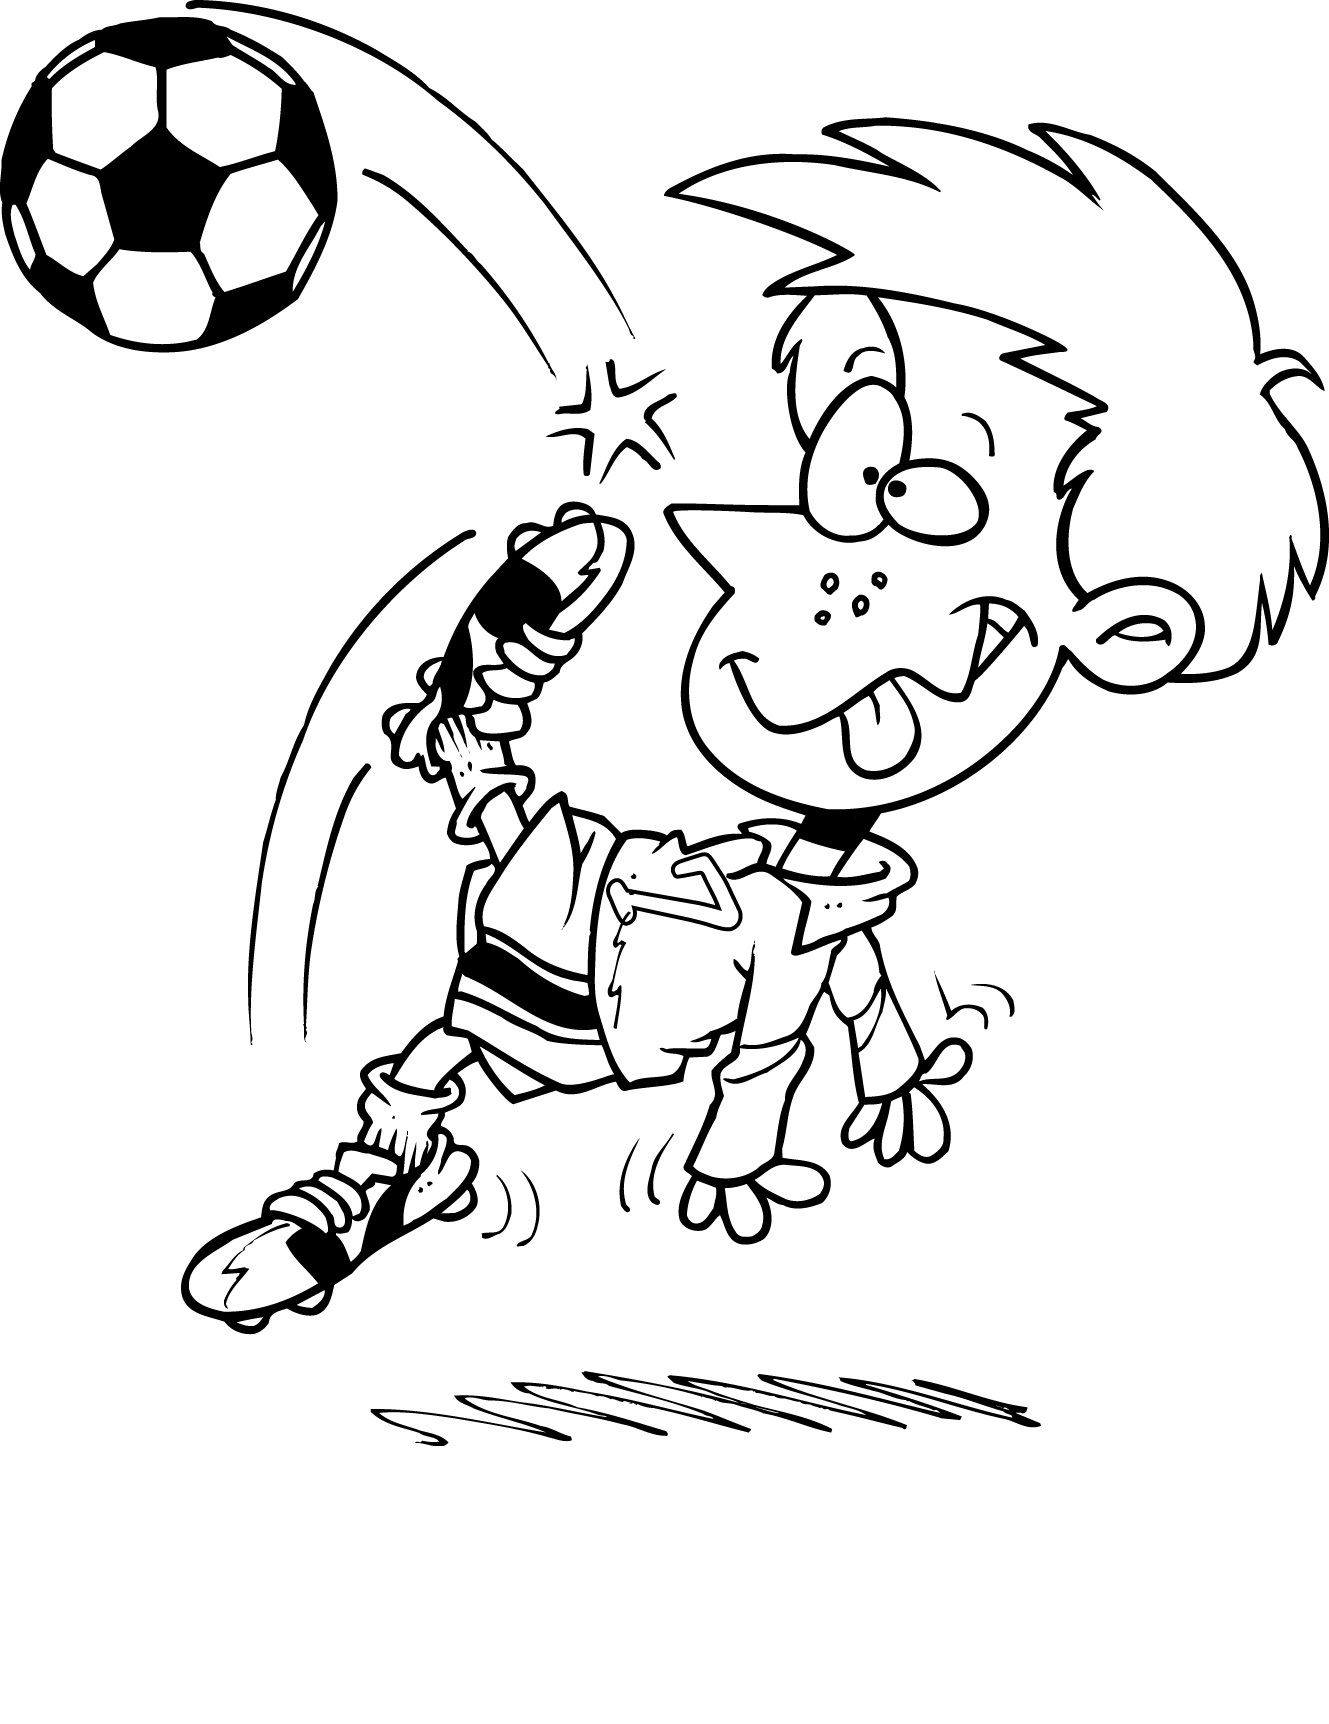 soccer colouring pages cartoon soccer ball clipartsco soccer pages colouring